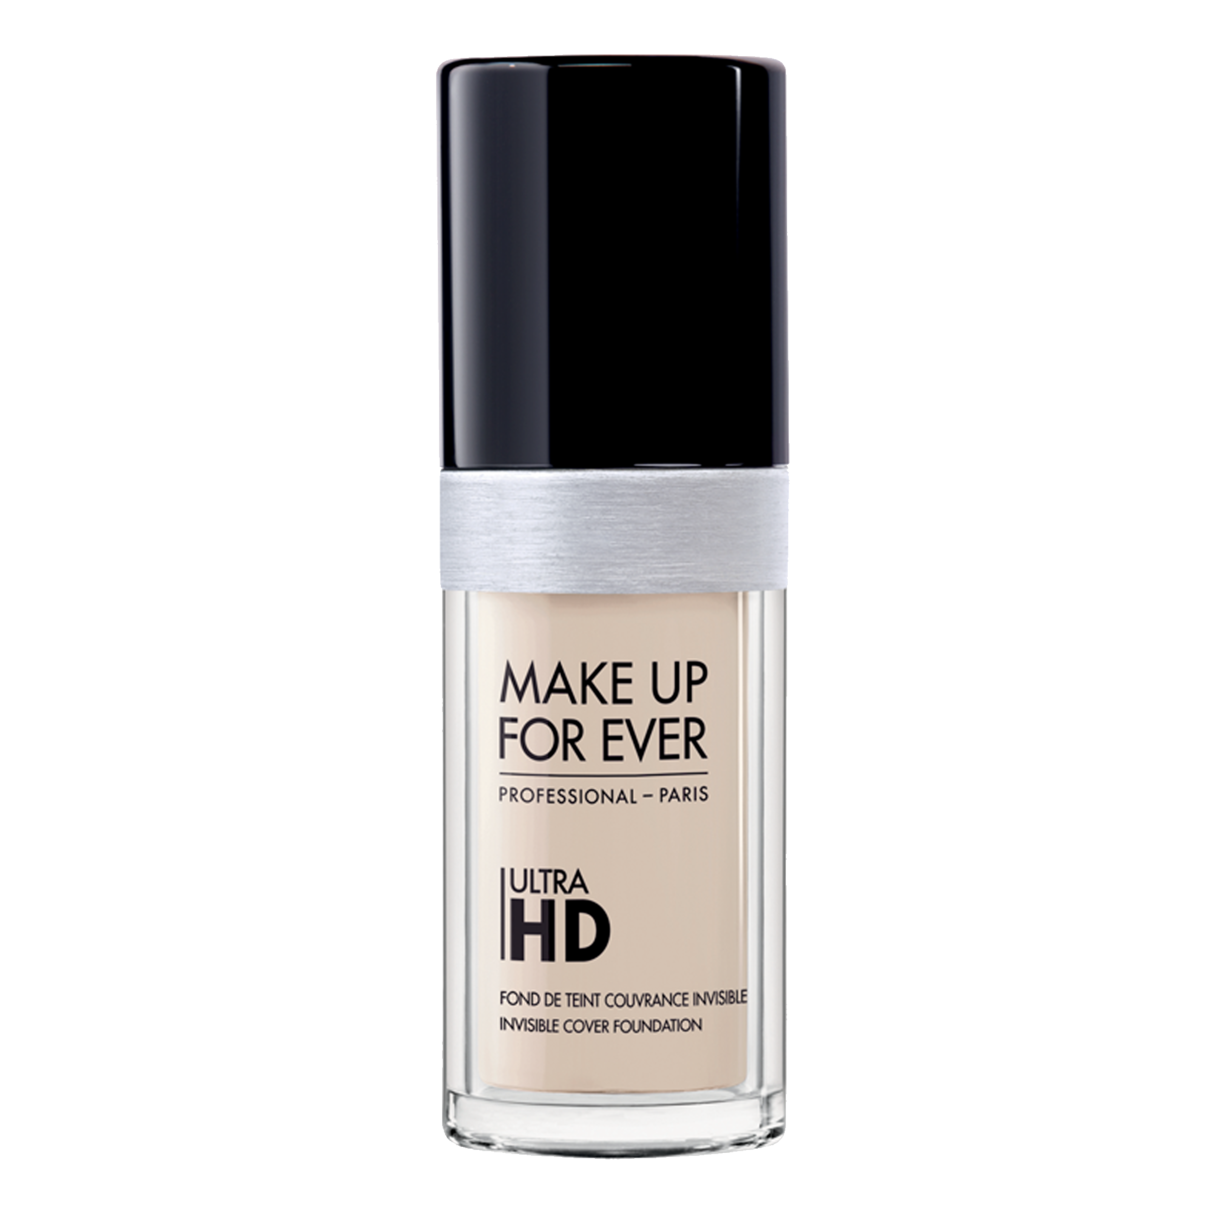 Make Up For Ever Ultra HD Fondöten incelemesi